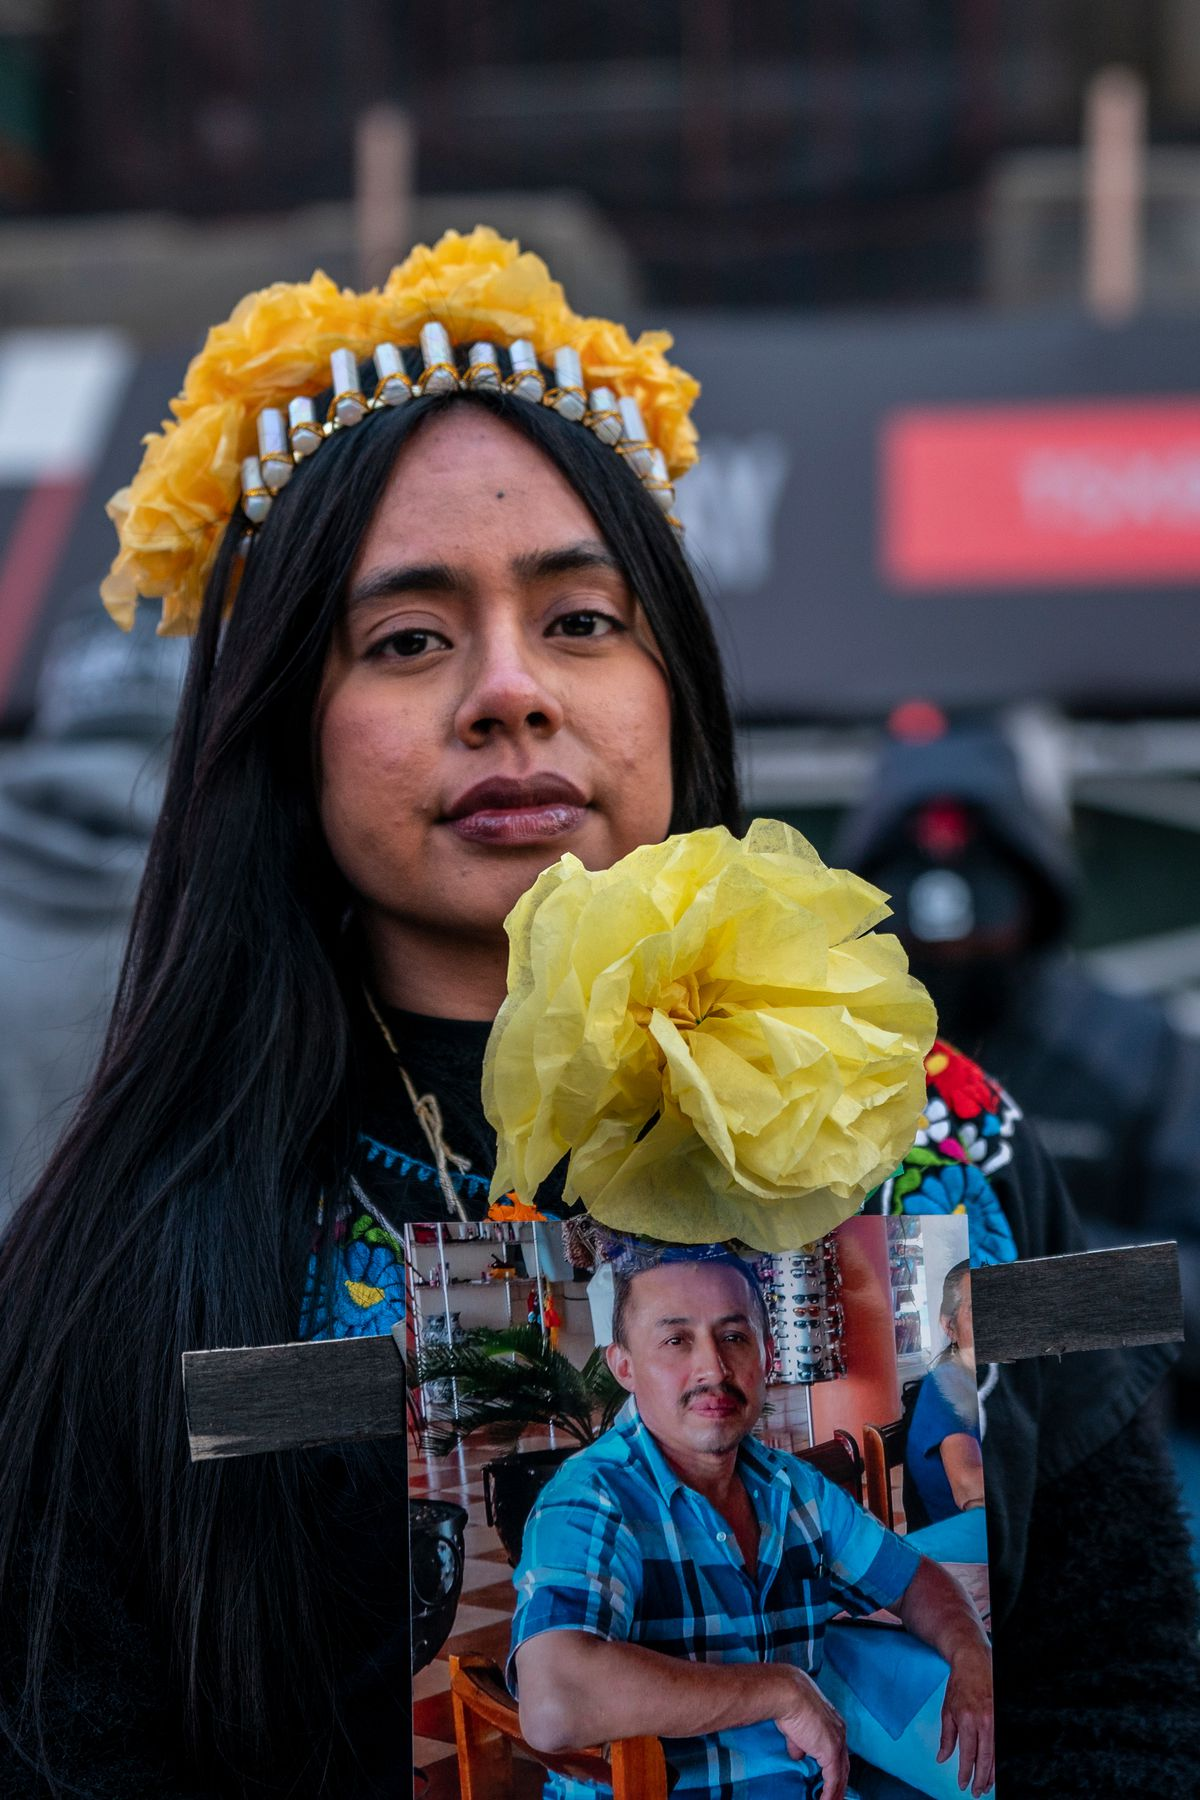 Yessenia Benítez took part in the Mexicanos Unidos march to honor her uncle who was killed from gun violence, Oct. 31, 2020.